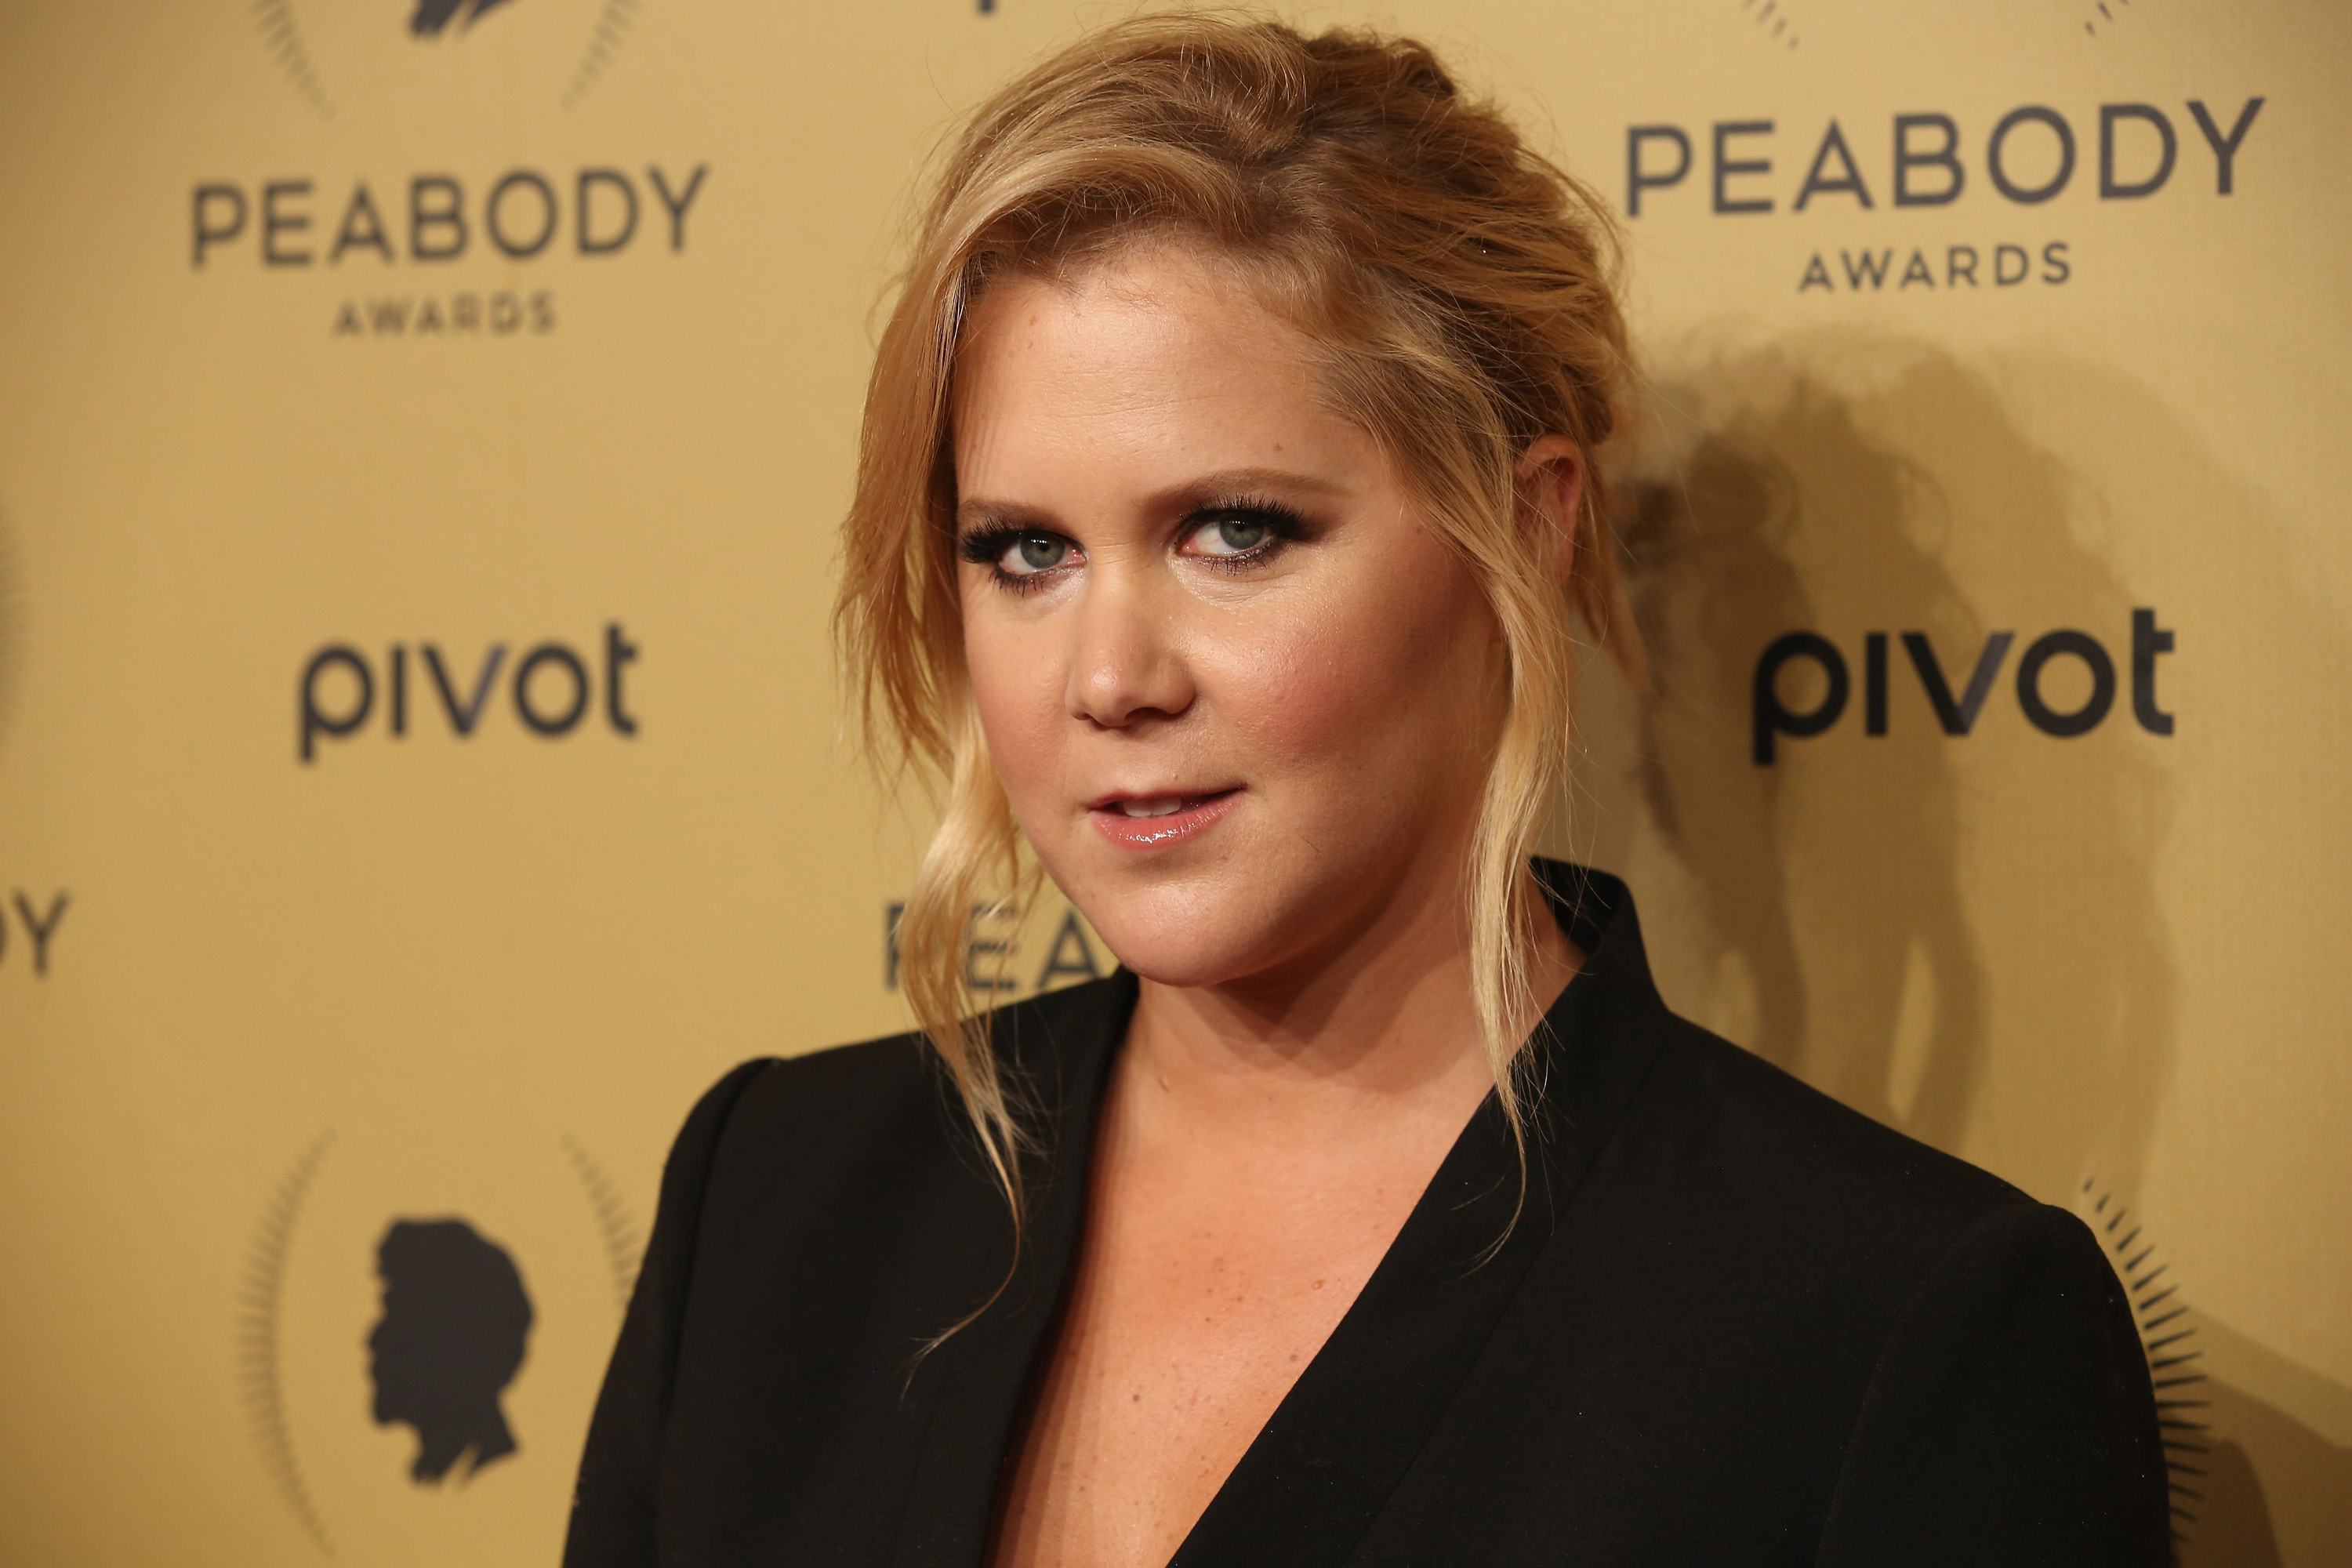 Pregnant Amy Schumer returns to work one day after being hospitalised with severe morning sickness